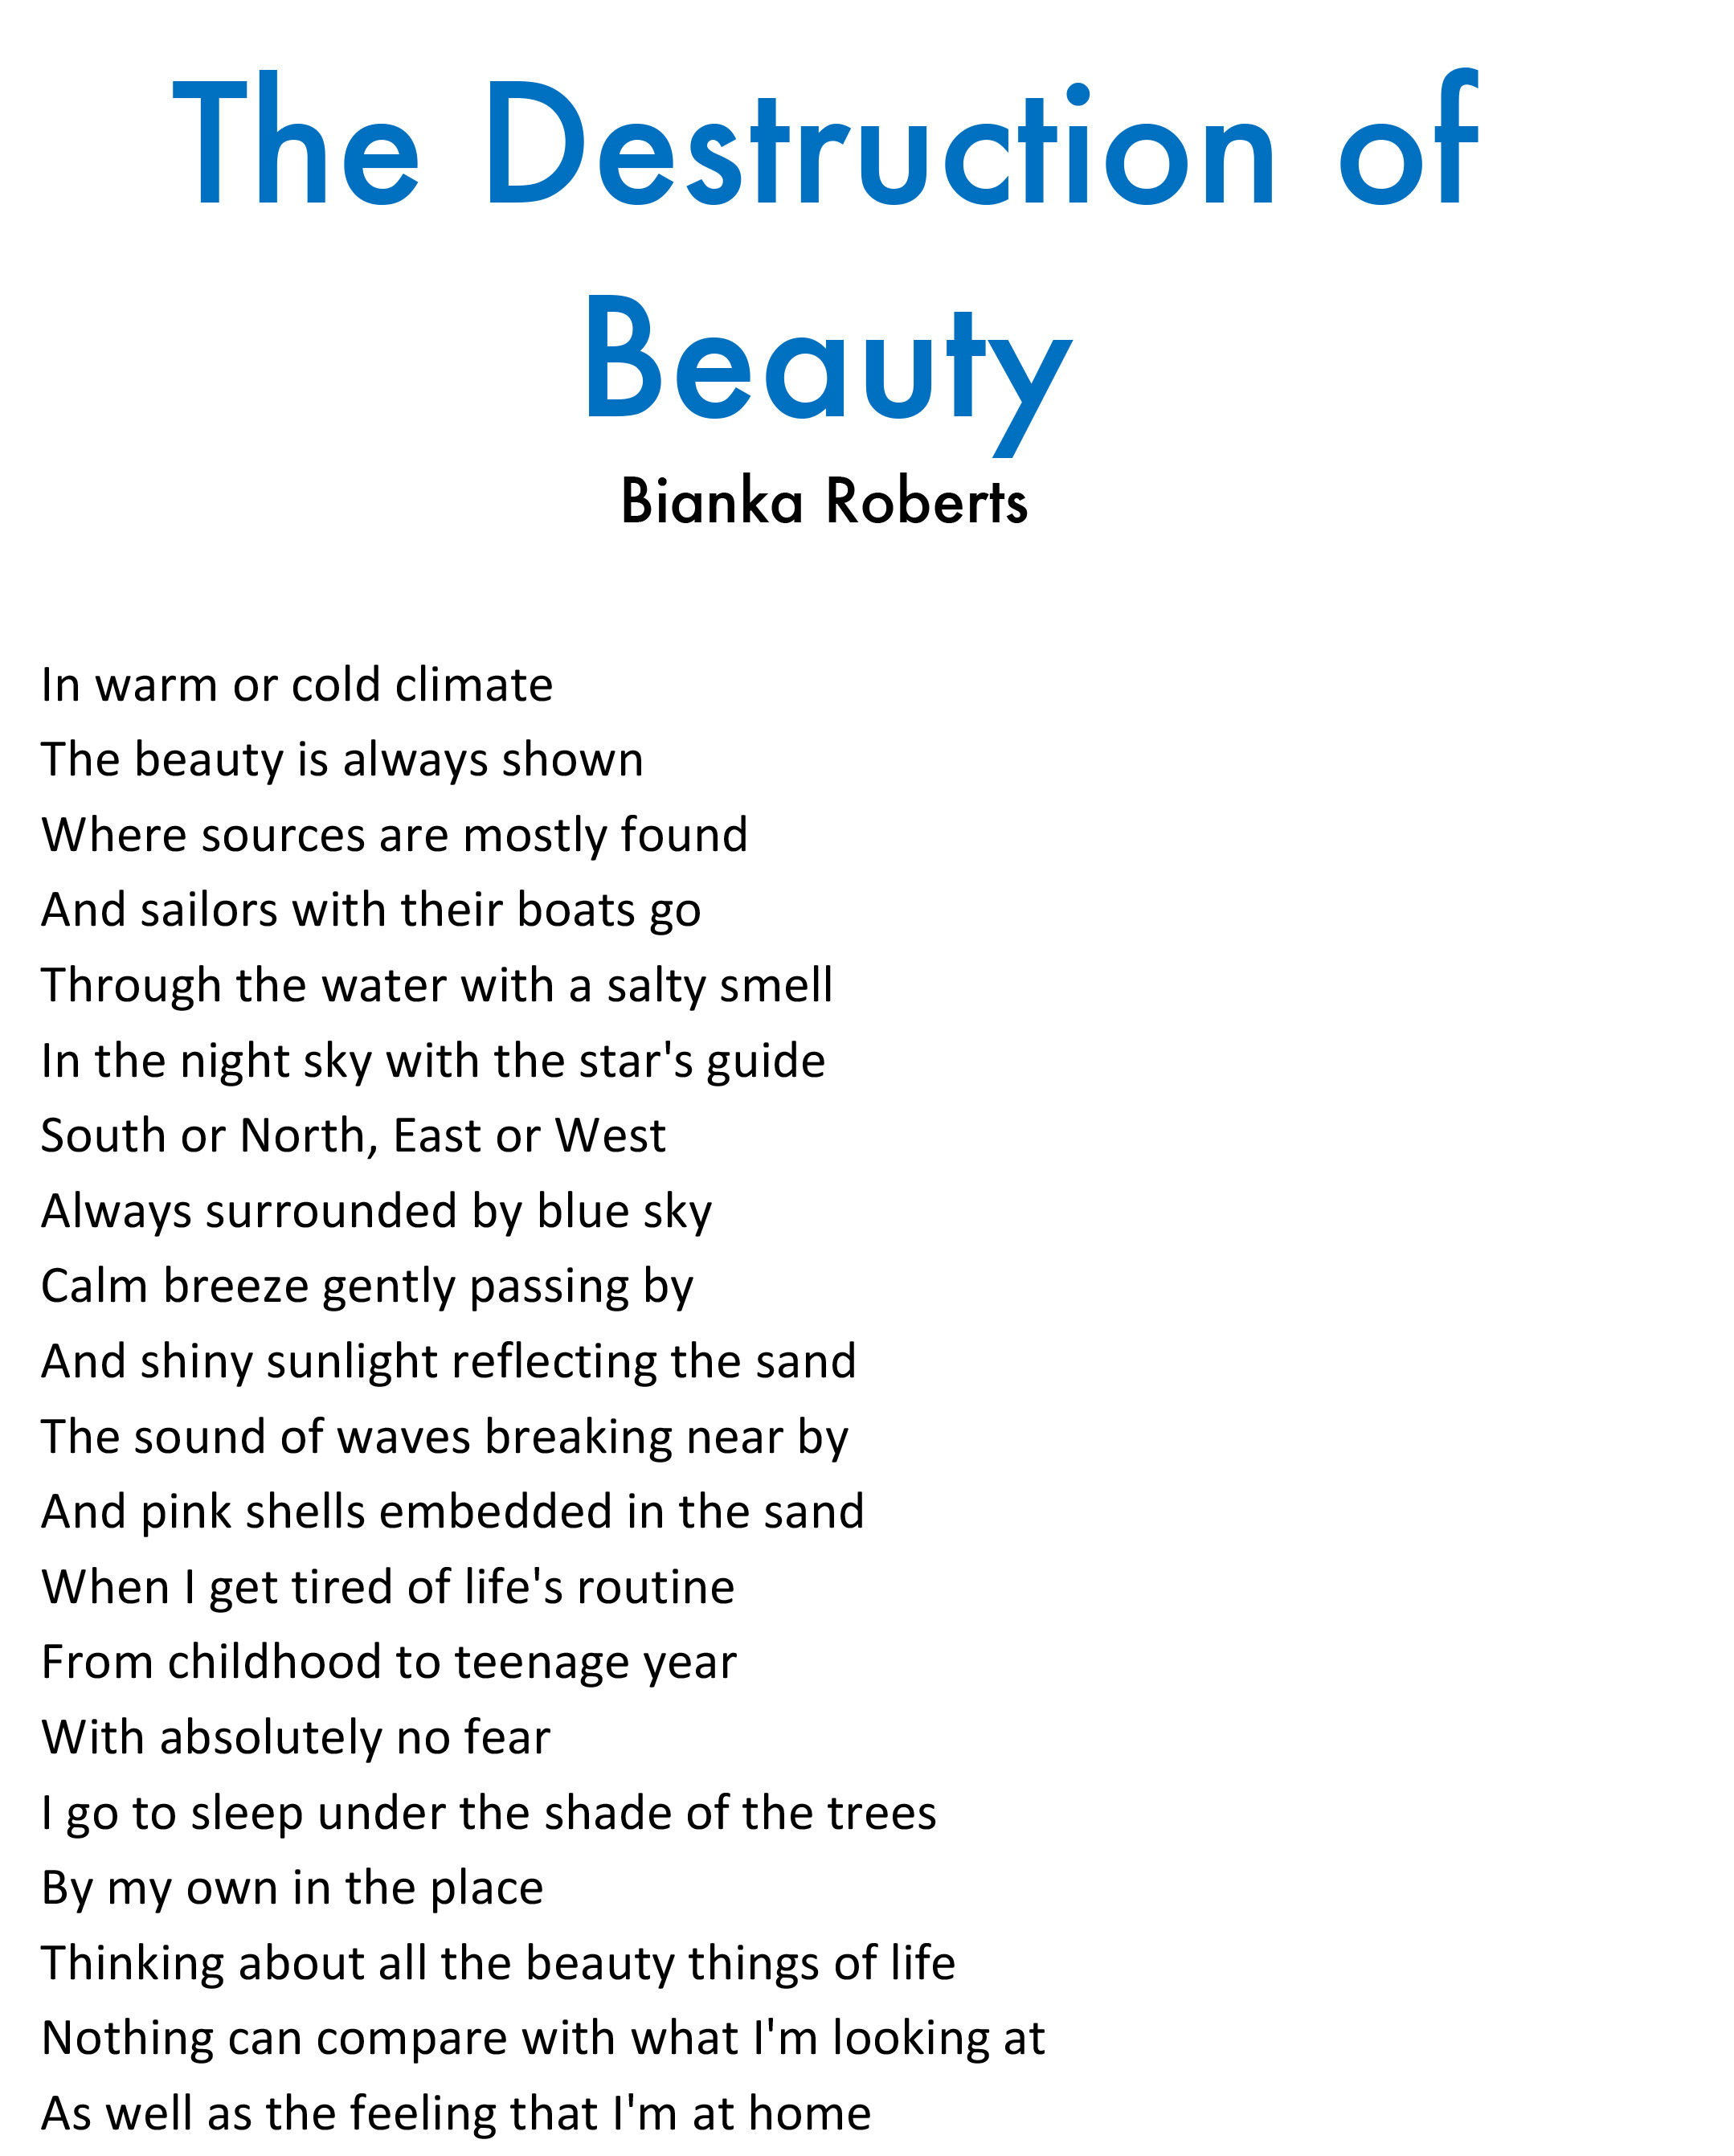 Bianka Roberts - The Destruction of Beauty